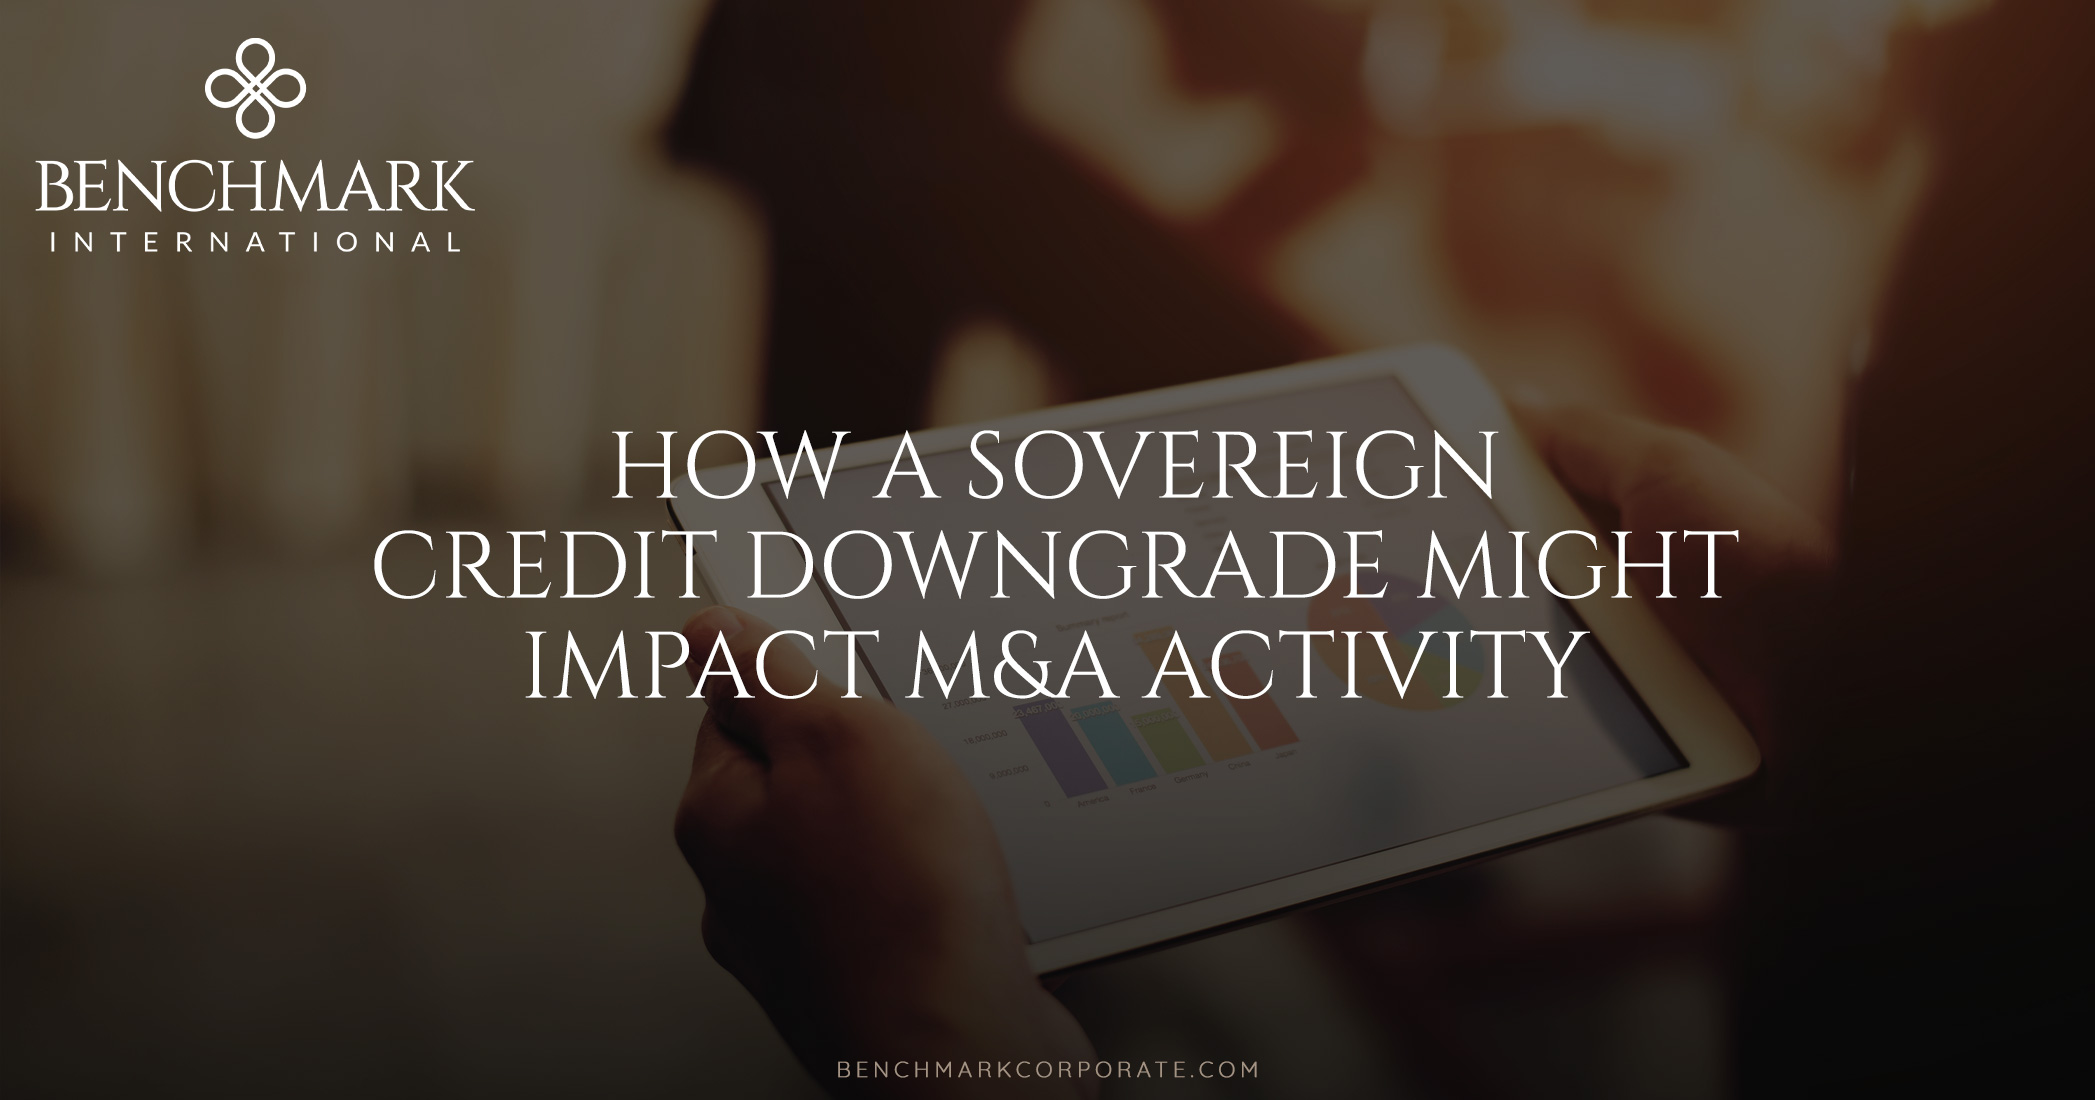 How A Sovereign Credit Downgrade Might Impact M&A Activity